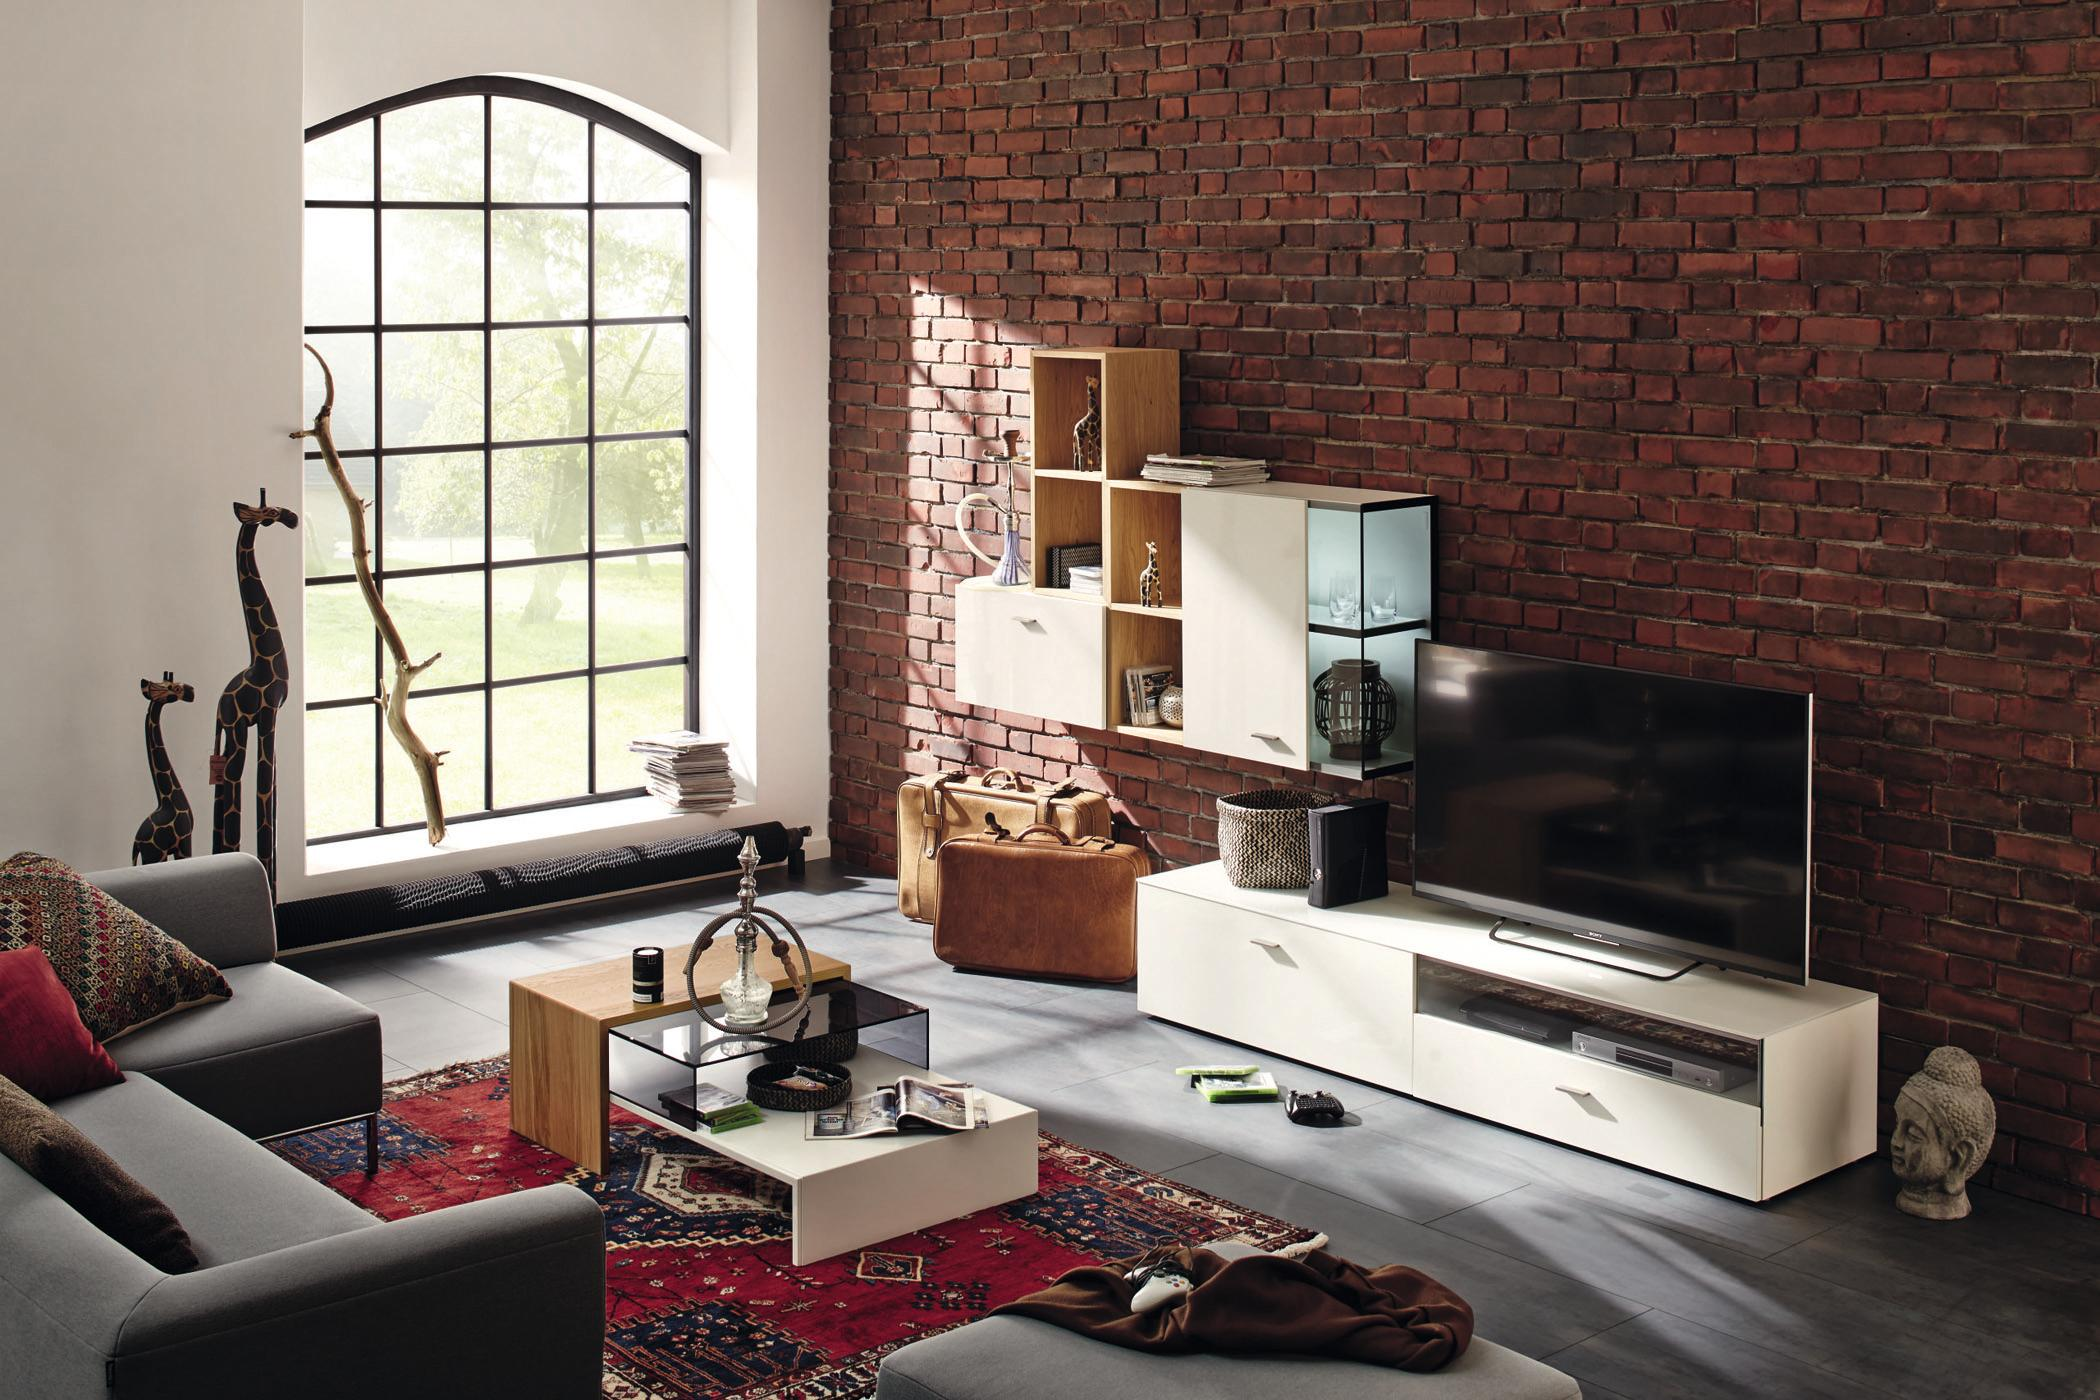 wohnzimmergestaltung ideen f r dein zuhause bei couch. Black Bedroom Furniture Sets. Home Design Ideas